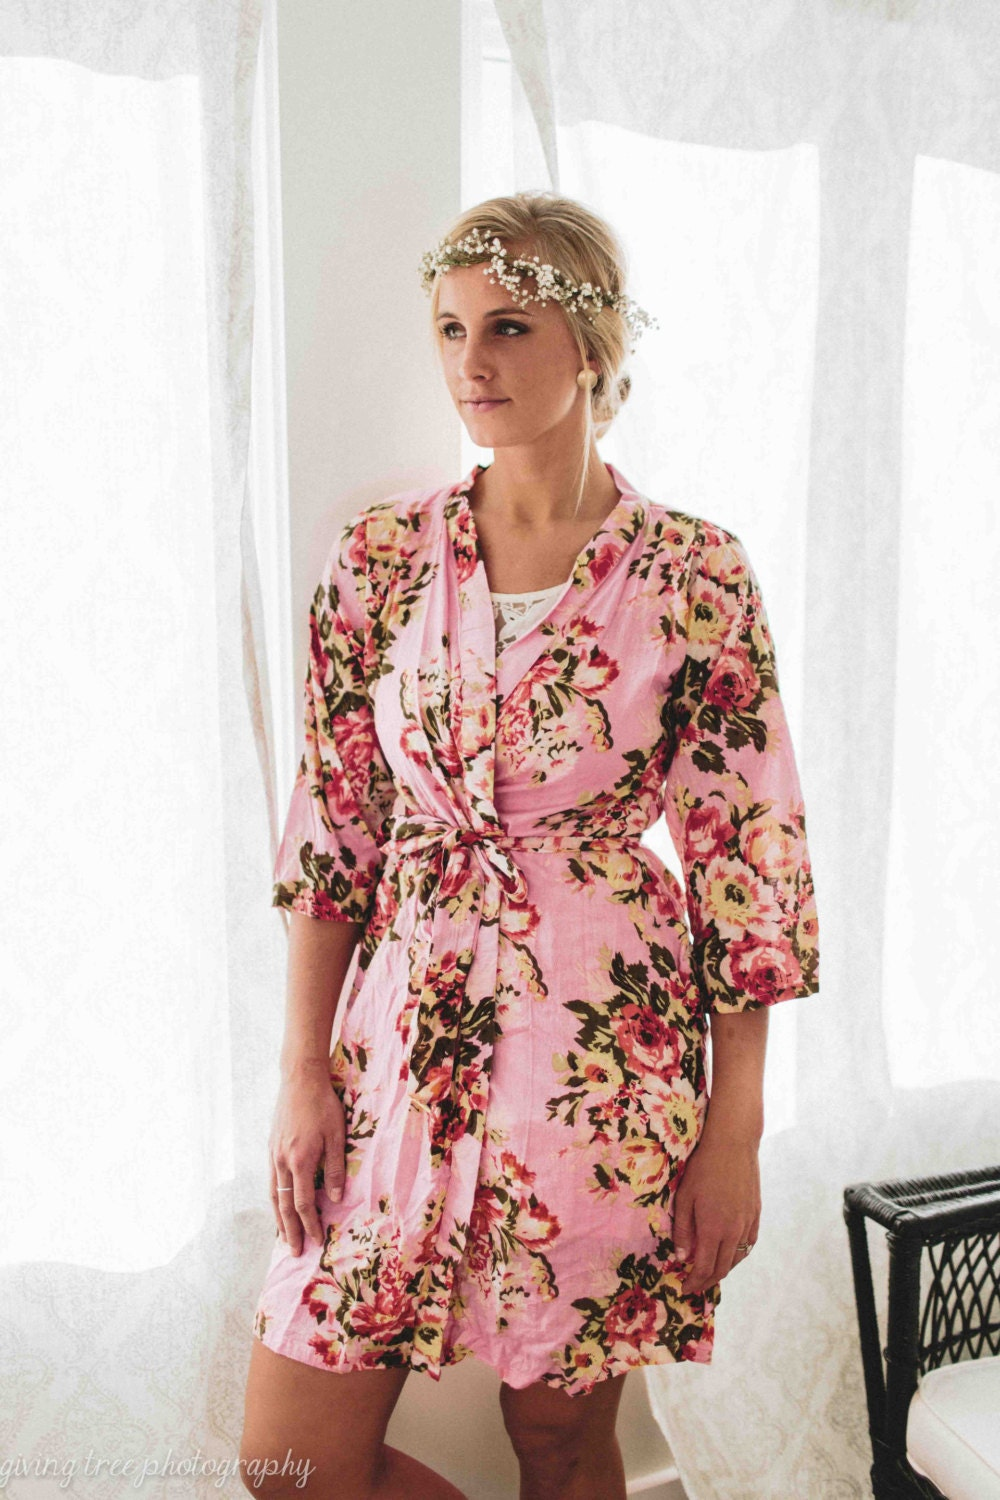 Womens Floral Dress, Pink Kimono Robe, Plus Sise Tunic, Short Party Dress, Cotton Wrap Dress, Beach Dress, Nursing, Boho Chic Dress, 220